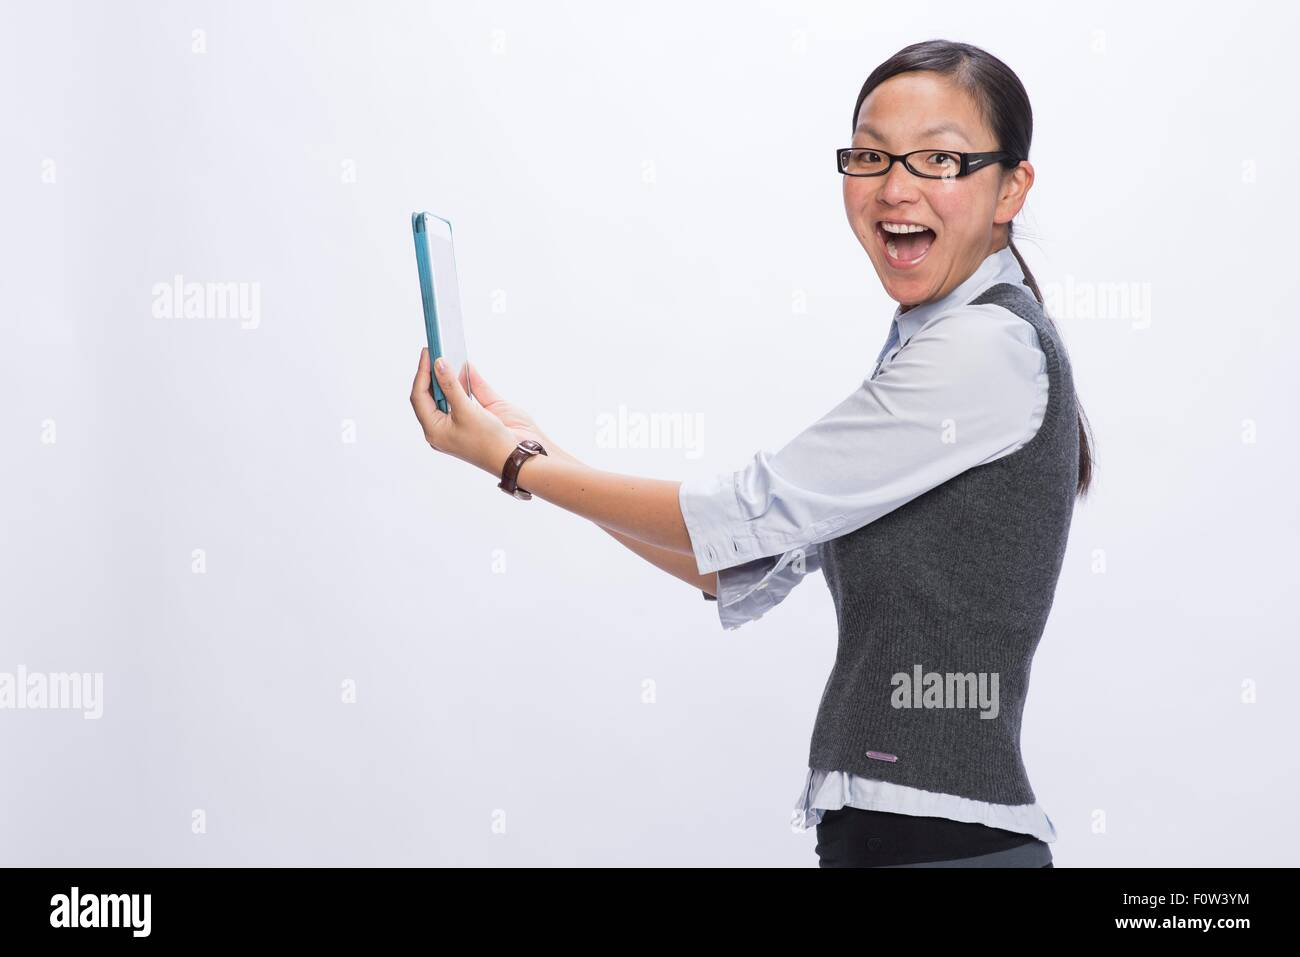 Businesswoman holding digital tablet at arms length - Stock Image